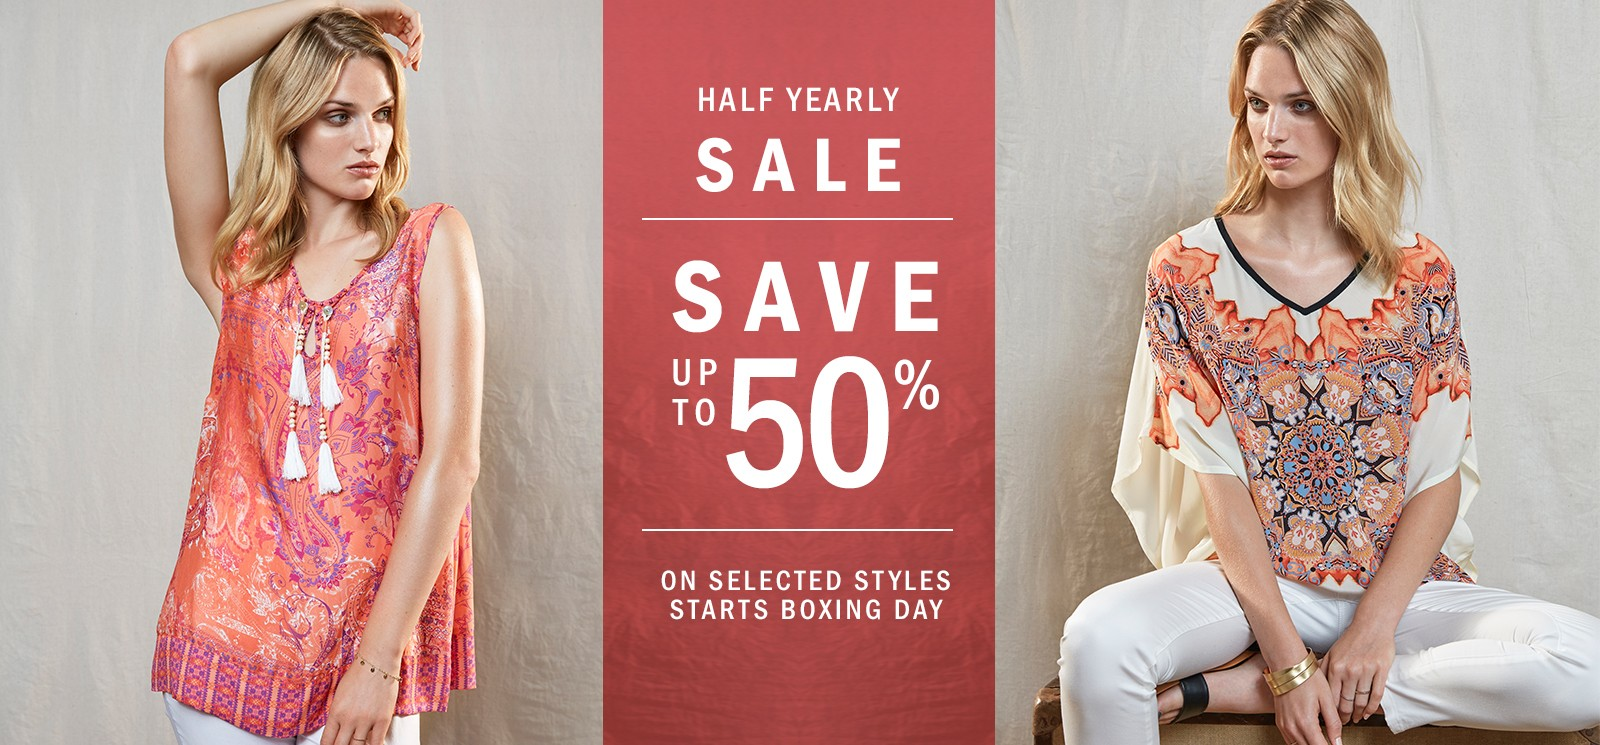 Bargain - Up to 50% Off - Selected Styles - Boxing Day Sale @ Hartleys Fashion